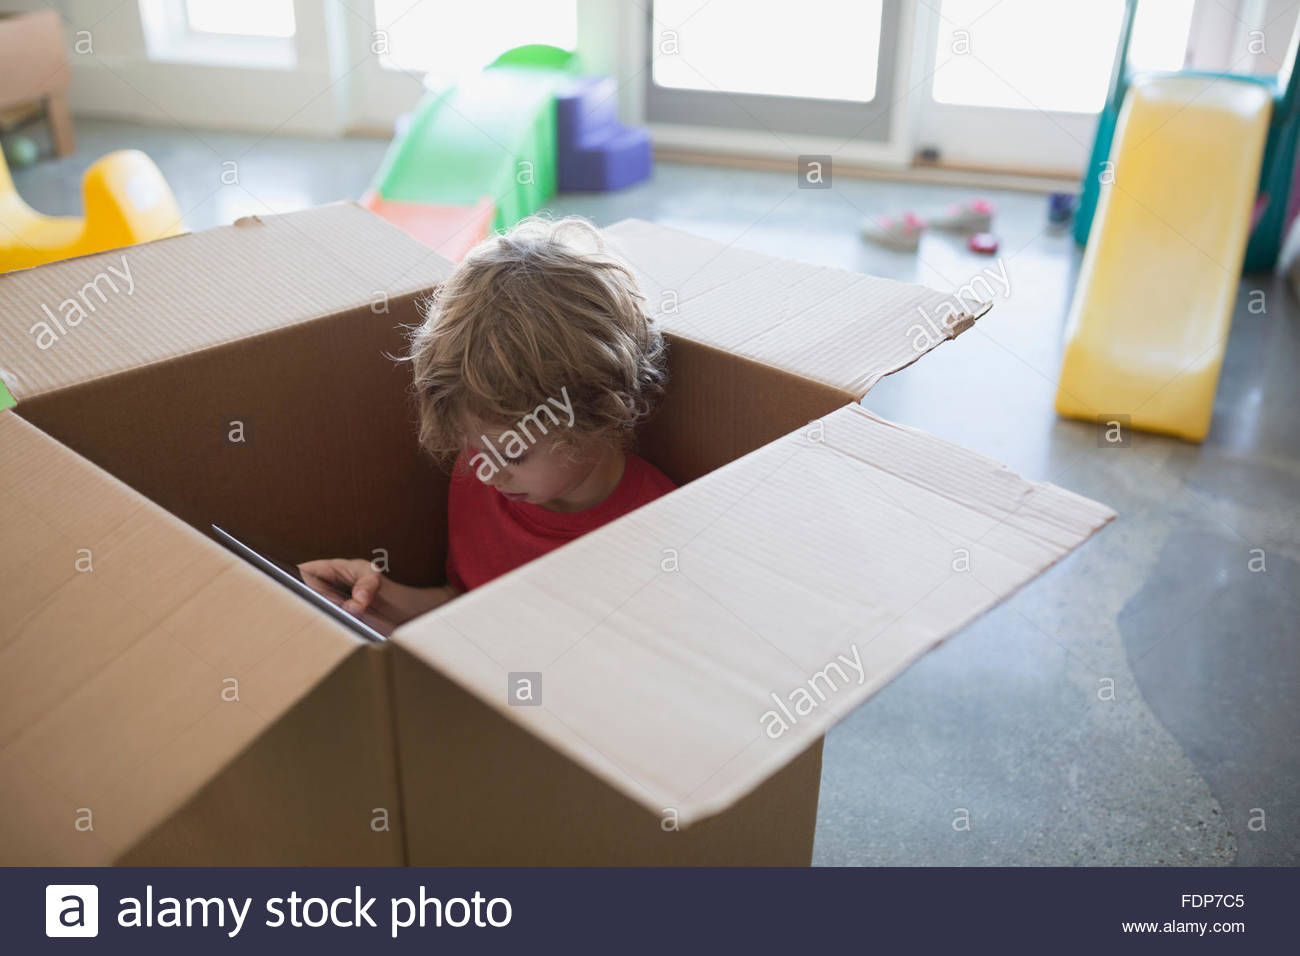 Boy using digital tablet inside cardboard box - Stock Image